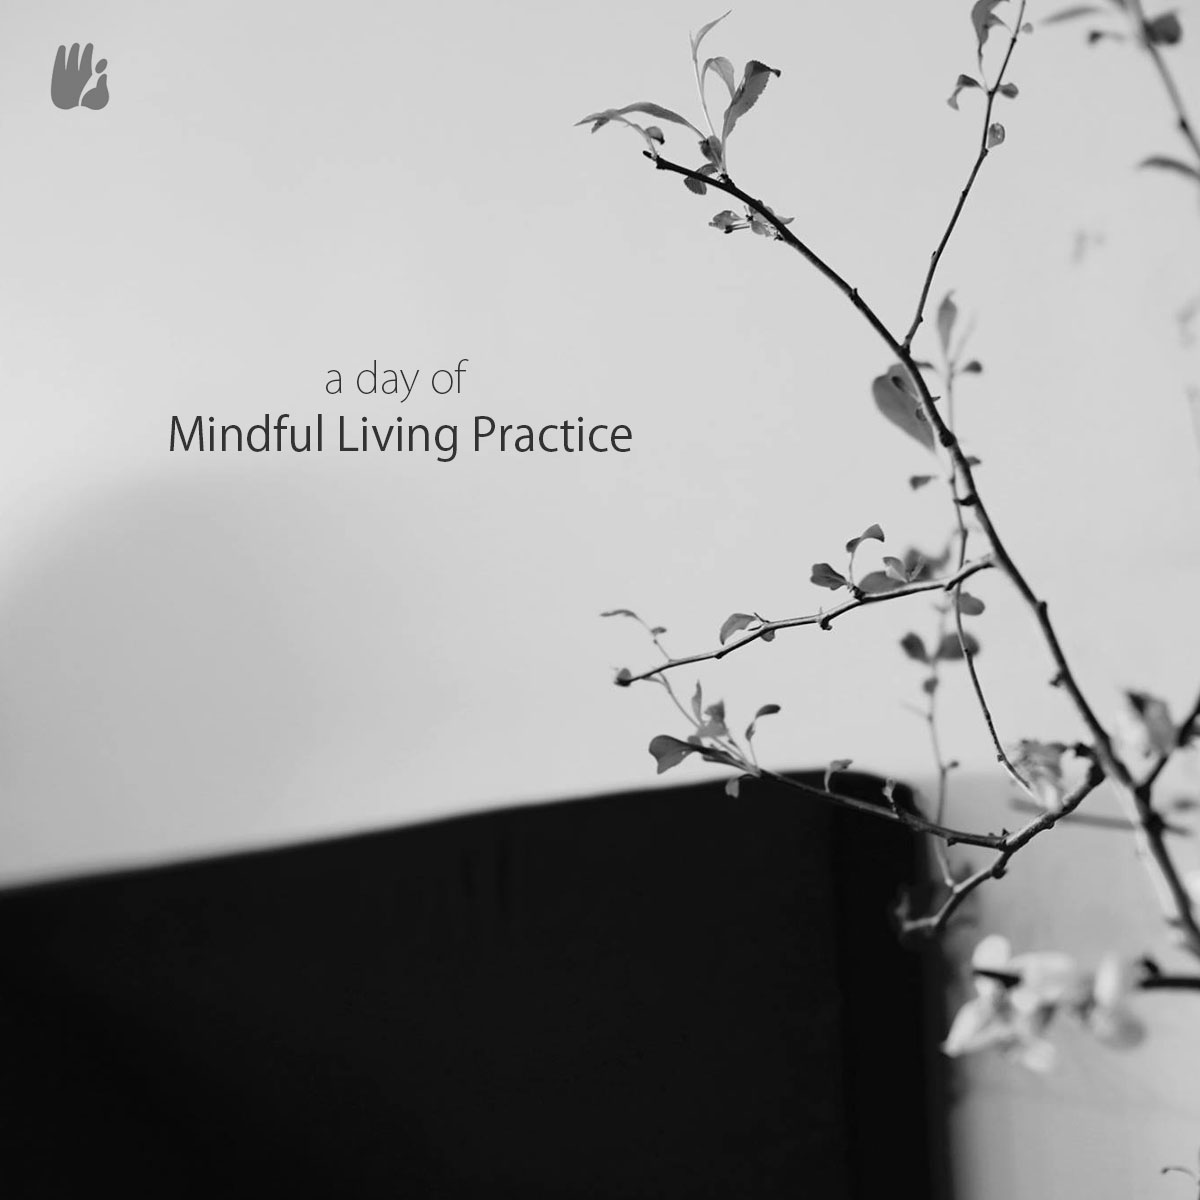 A Day of Mindful Living Practice